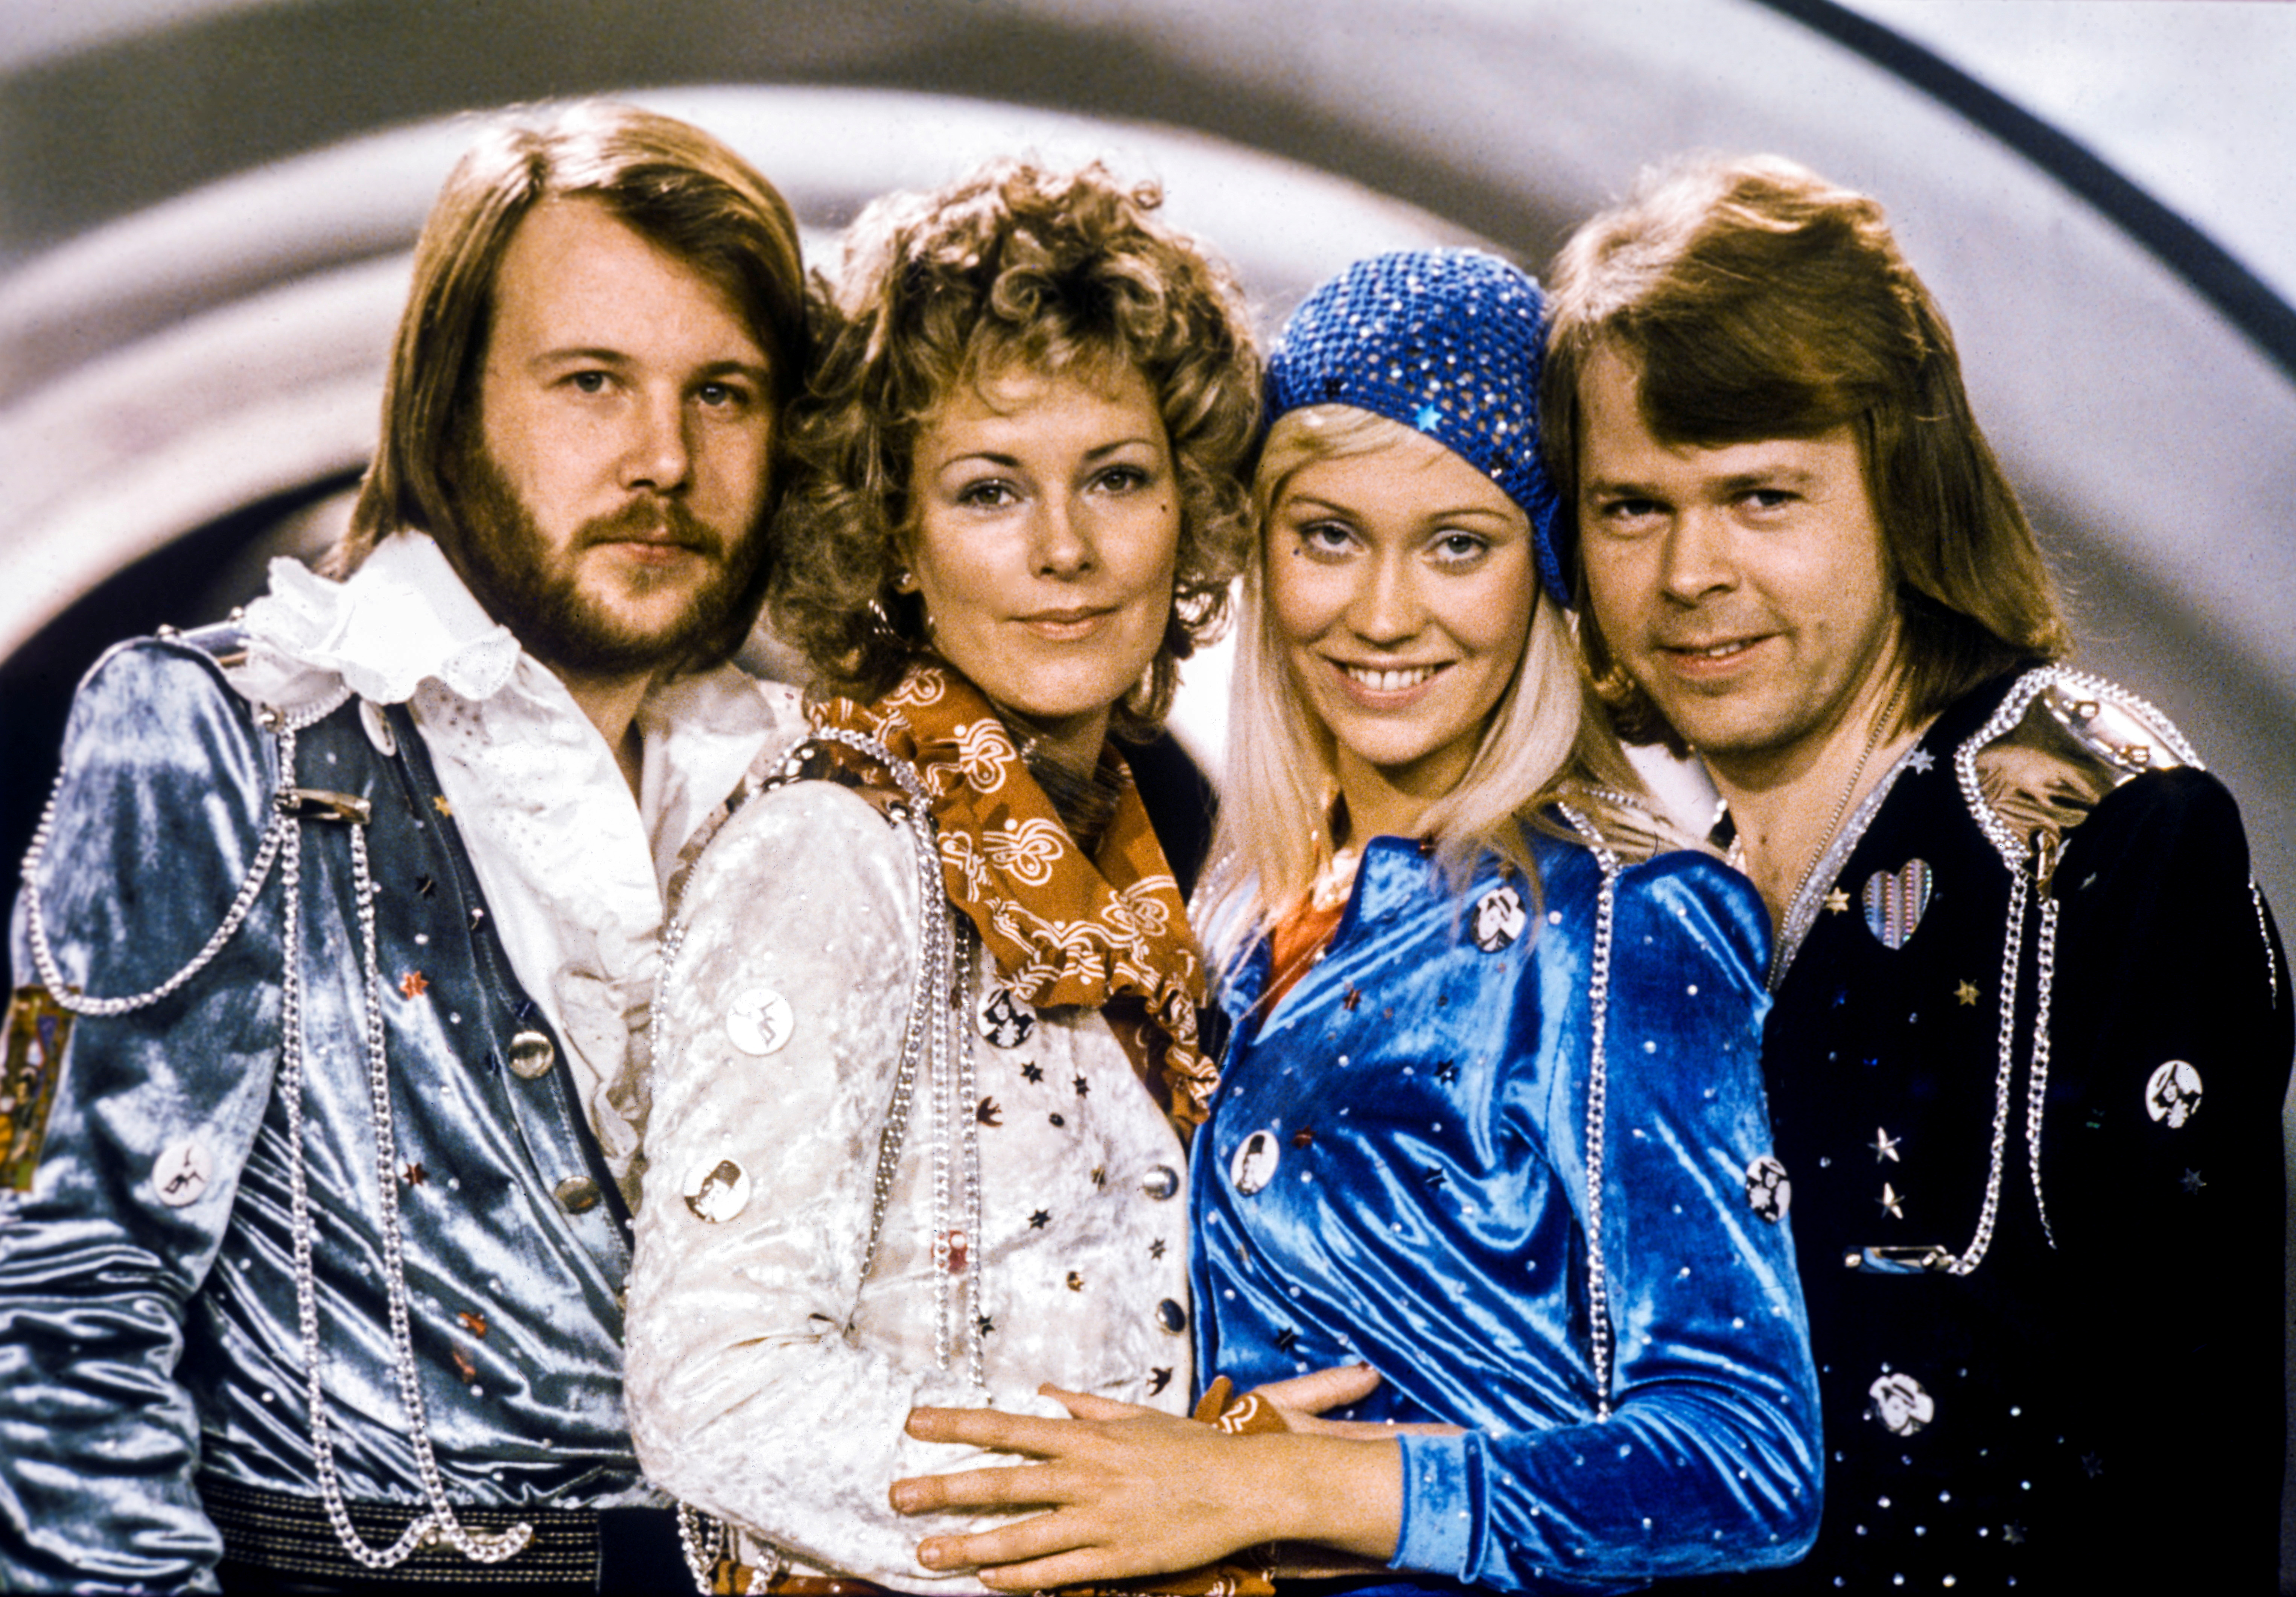 Swedish pop group Abba: Benny Andersson, Anni-Frid Lyngstad, Agnetha Faltskog and Bjorn Ulvaeus pose after winning the Swedish branch of the Eurovision Song Contest with their song